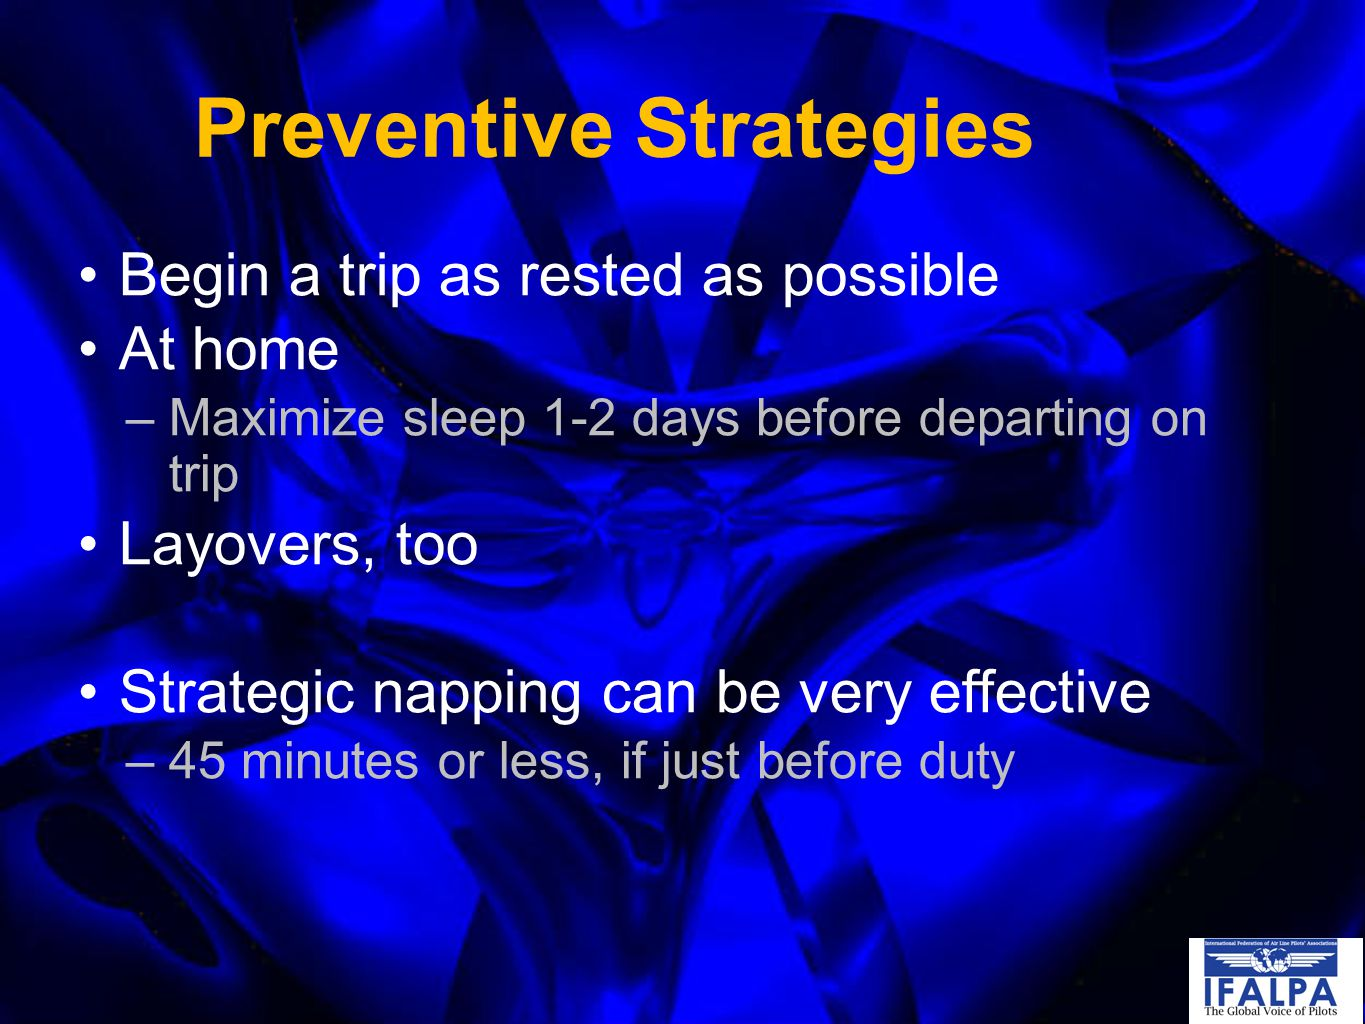 Preventive Strategies Begin a trip as rested as possible At home –Maximize sleep 1-2 days before departing on trip Layovers, too Strategic napping can be very effective –45 minutes or less, if just before duty